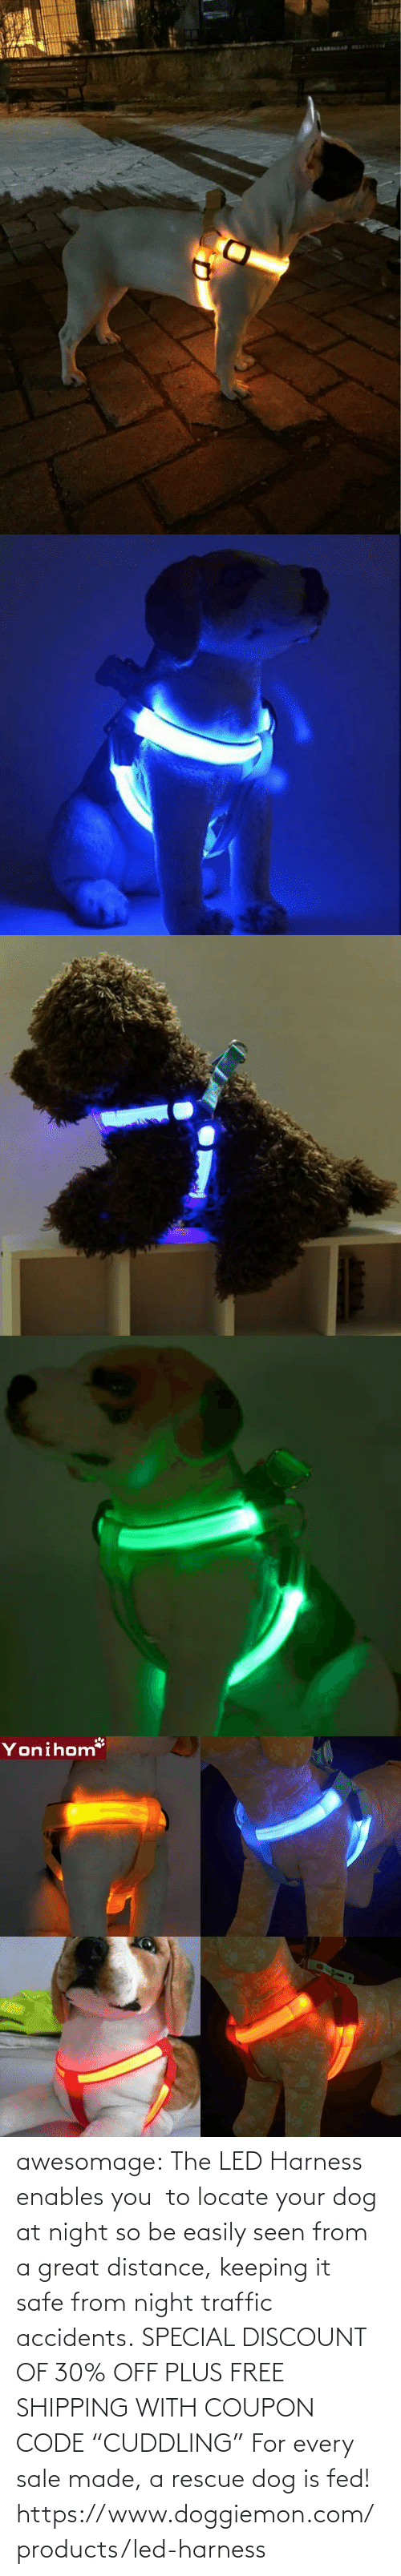 "At Night: awesomage:   The LED Harness enables you  to locate your dog at night so be easily seen from a great distance, keeping it safe from night traffic accidents. SPECIAL DISCOUNT OF 30% OFF PLUS FREE SHIPPING WITH COUPON CODE ""CUDDLING"" For every sale made, a rescue dog is fed!   https://www.doggiemon.com/products/led-harness"